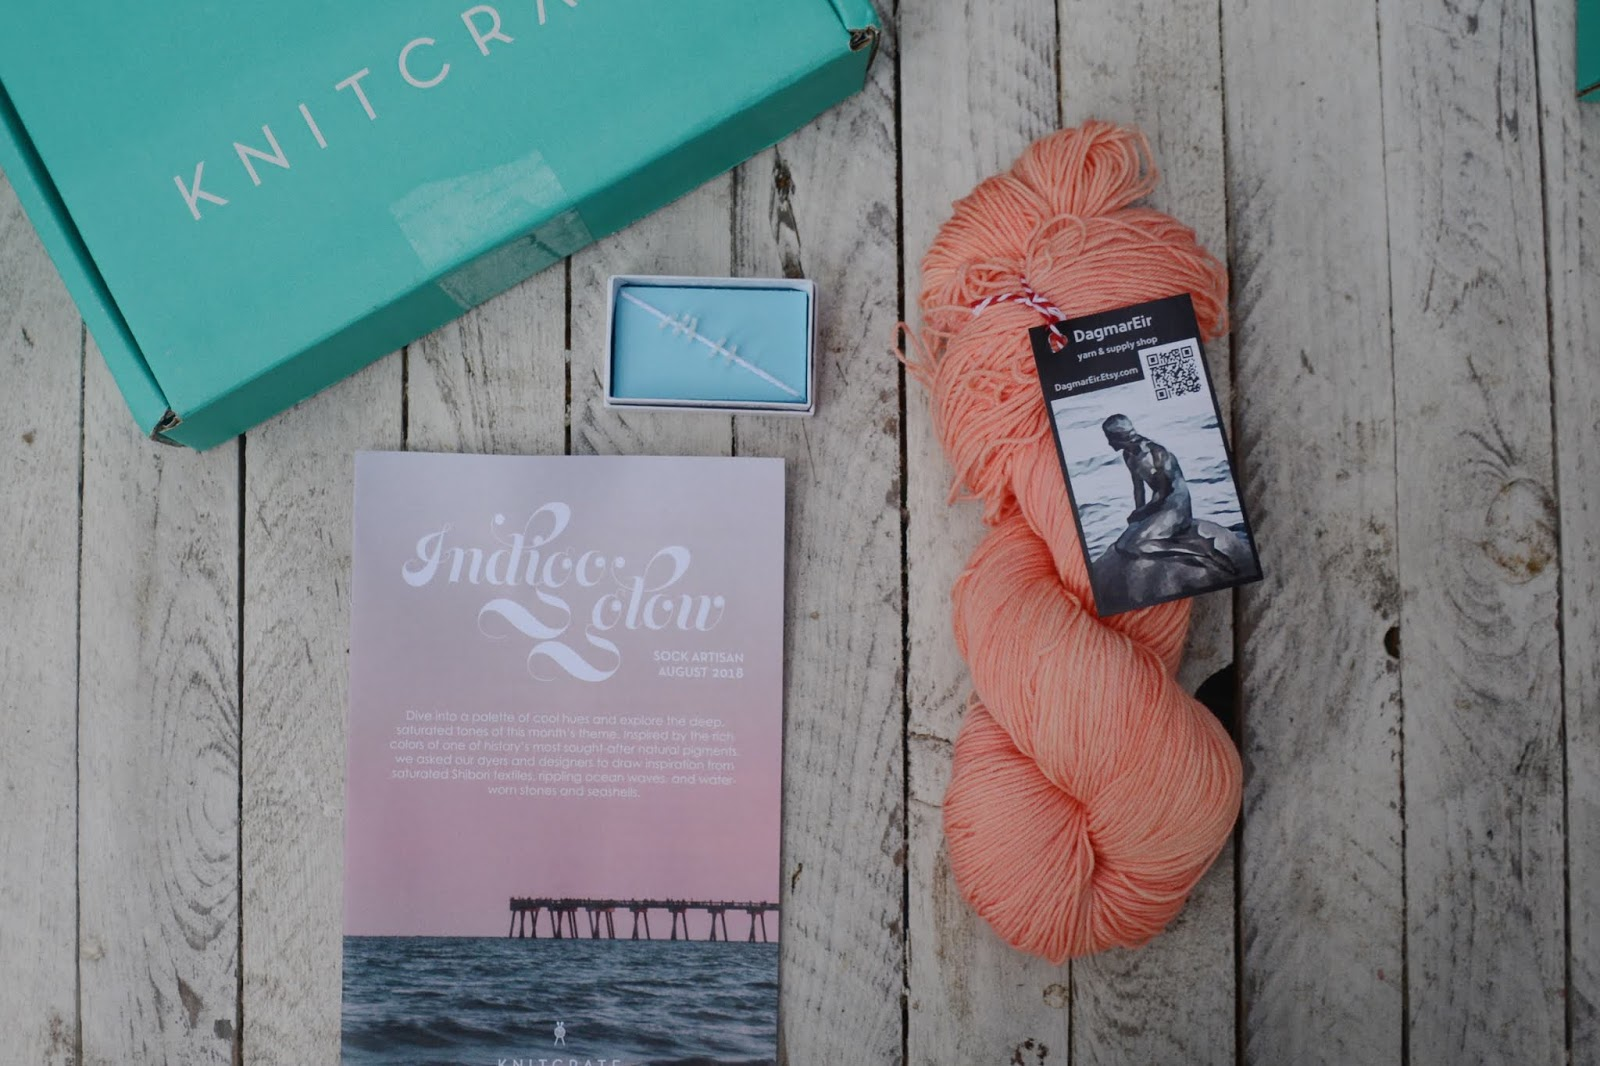 august knitcrate - a Friend to knit with